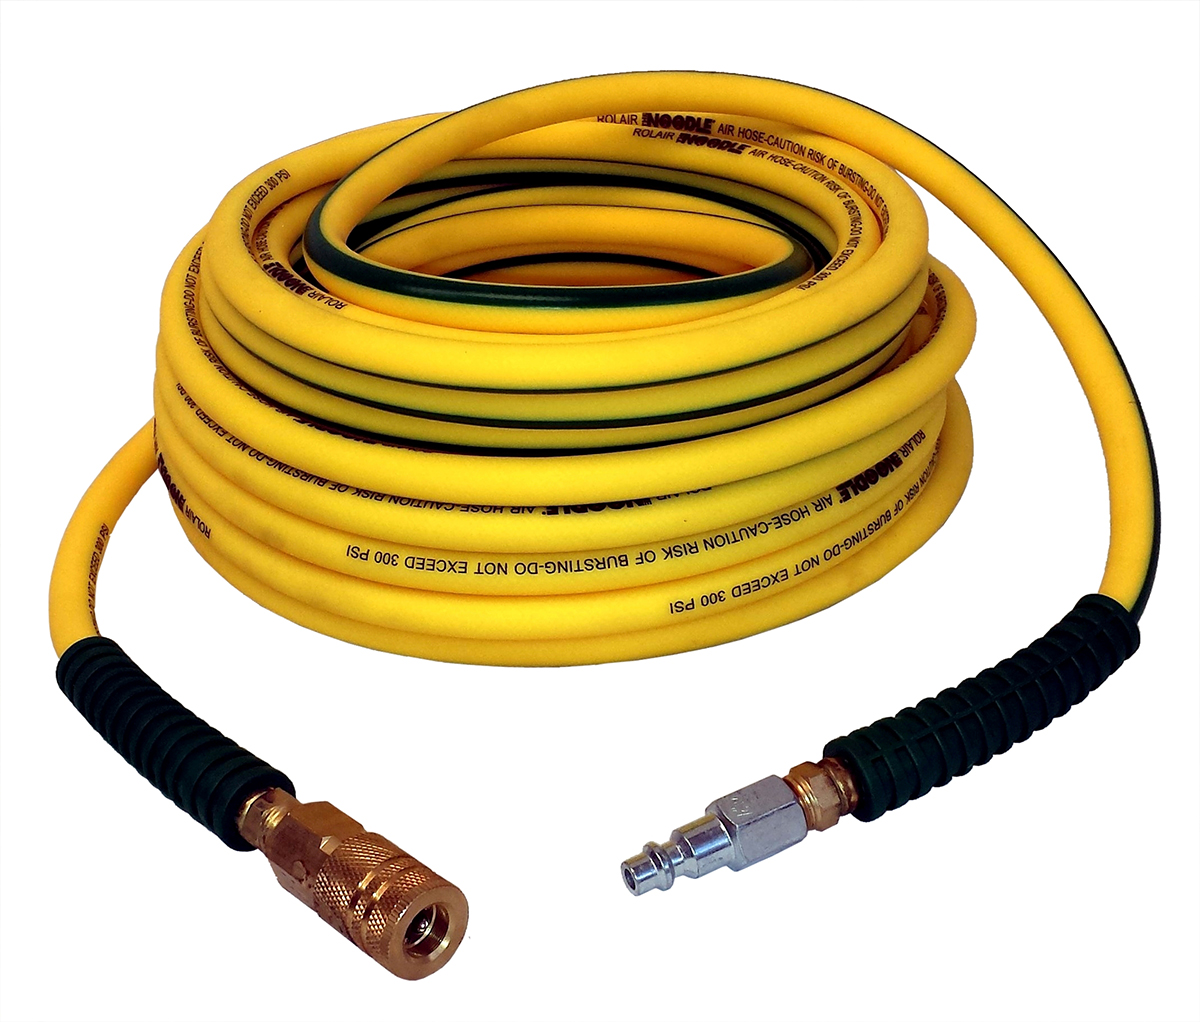 Air Hose Buyer S Guide Rolair